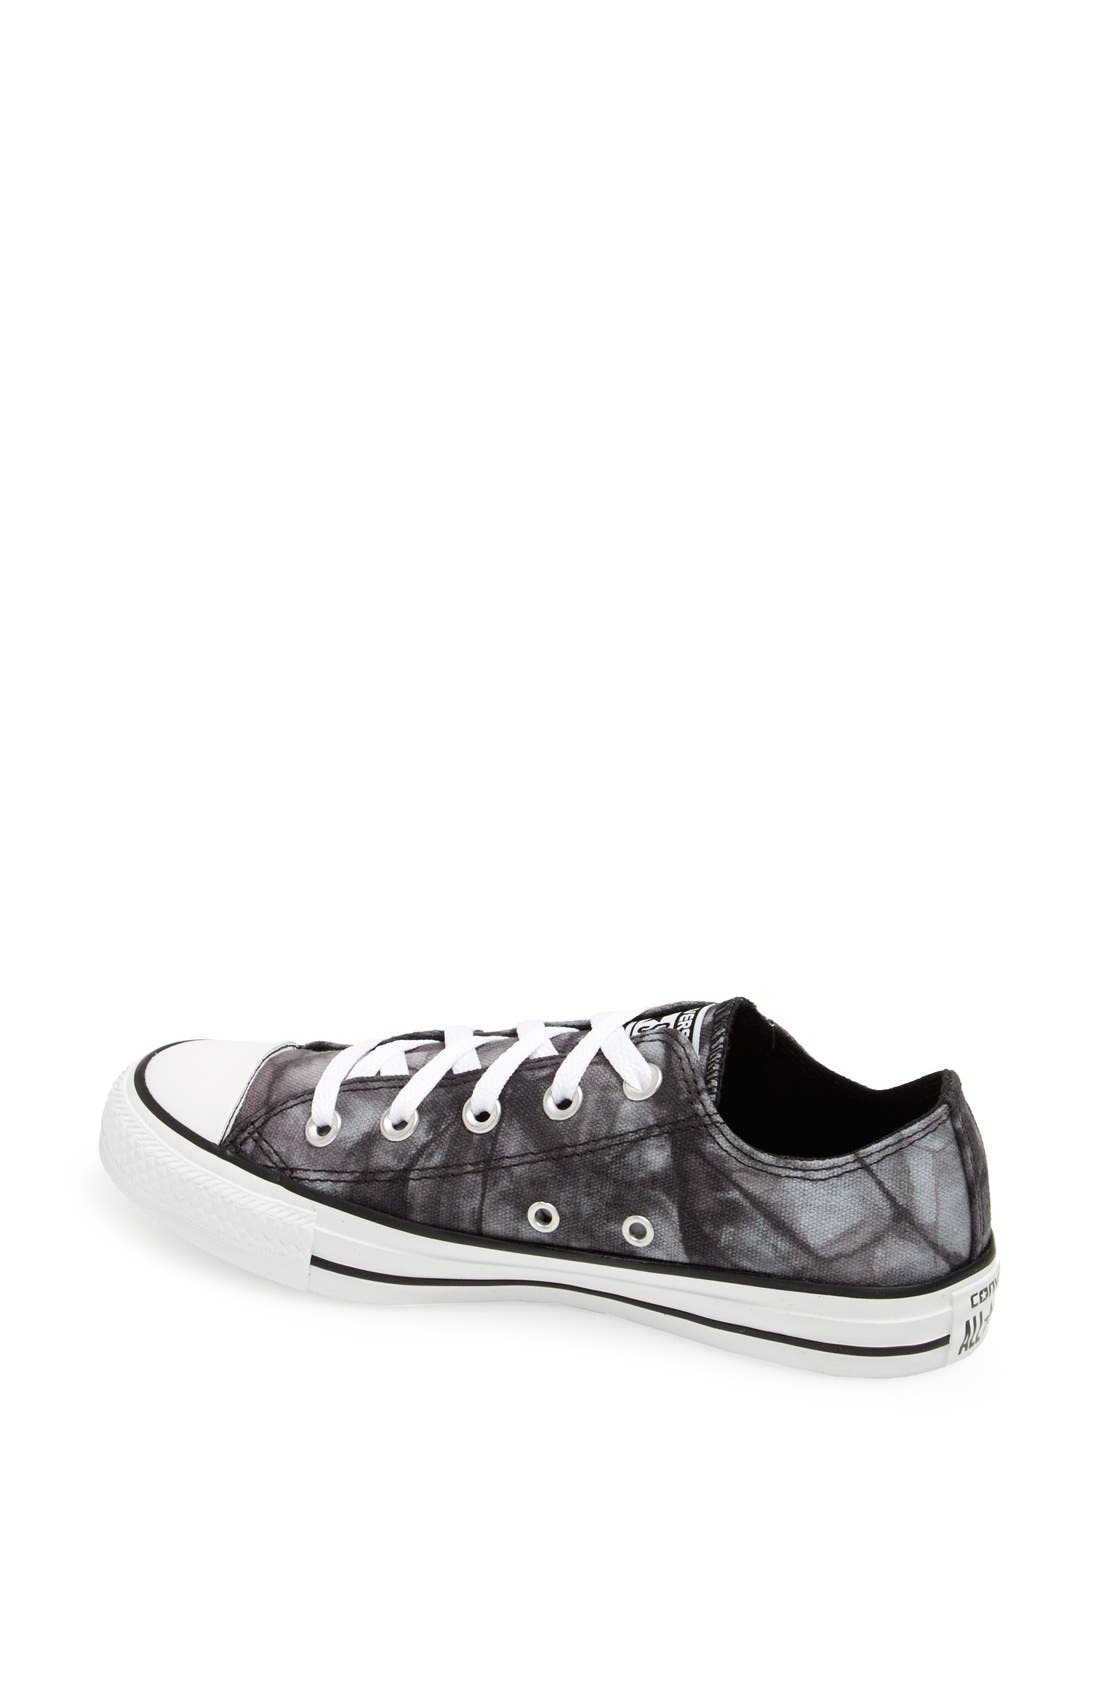 Alternate Image 2  - Converse Chuck Taylor® All Star® 'Ox' Tie Dye Low Top Sneaker (Women)